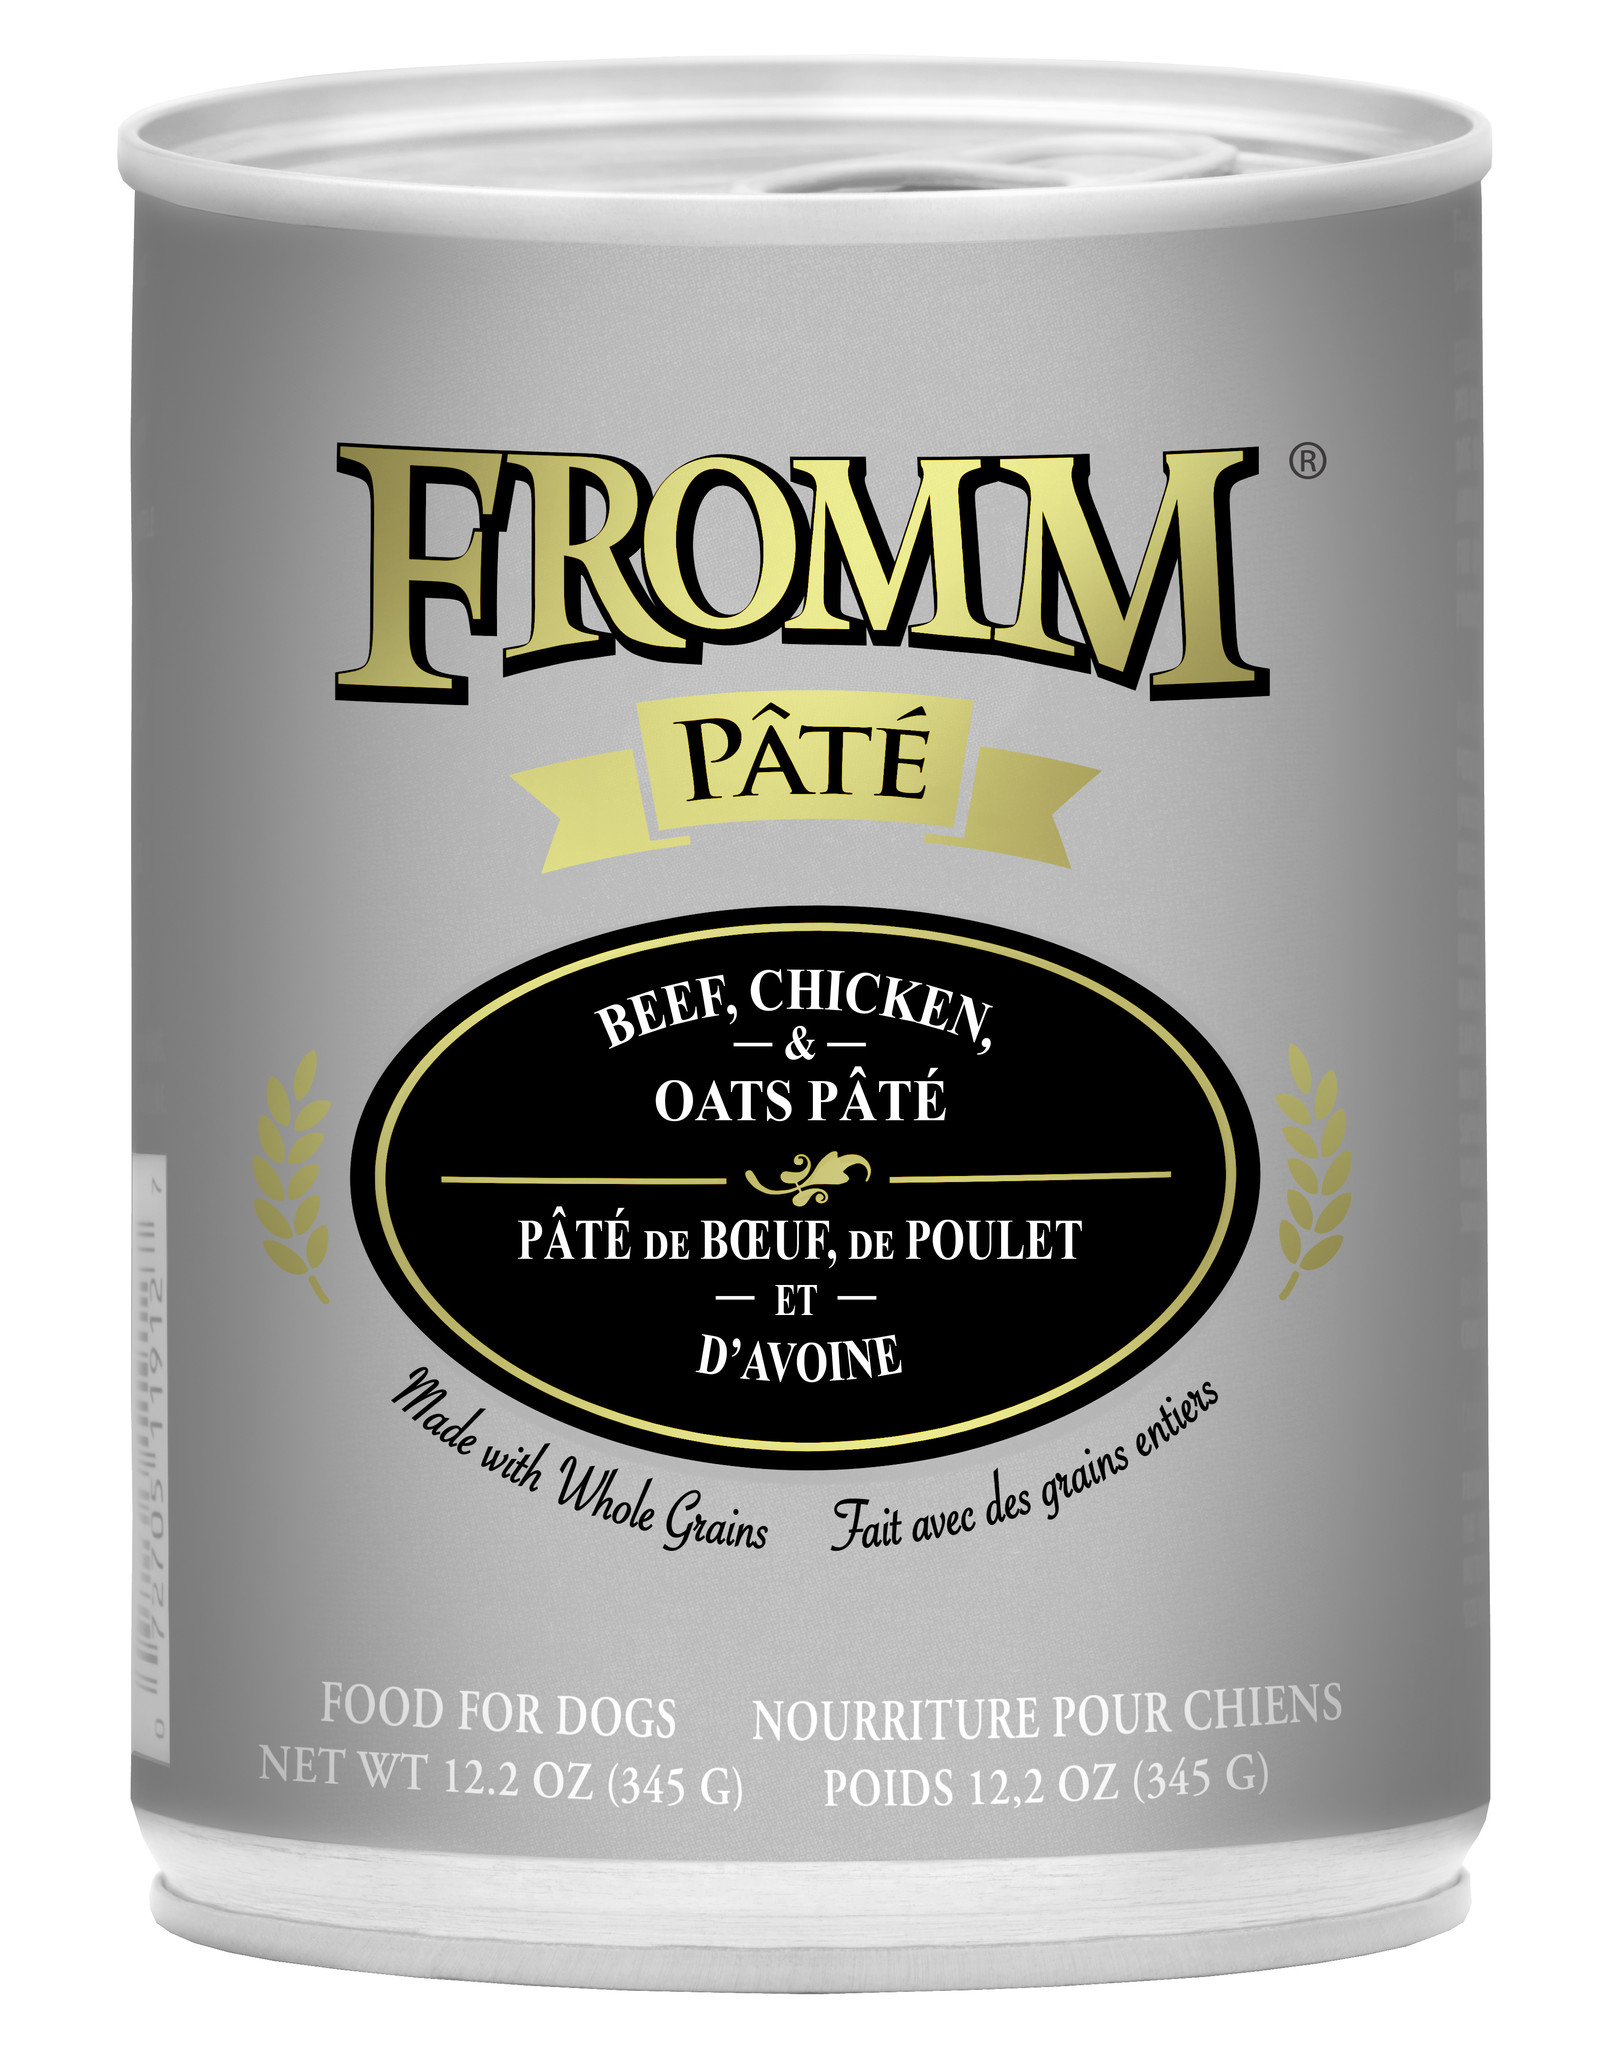 Fromm Fromm Pate Dog Can Beef, Chicken & Oats CASE OF 12-12.2oz